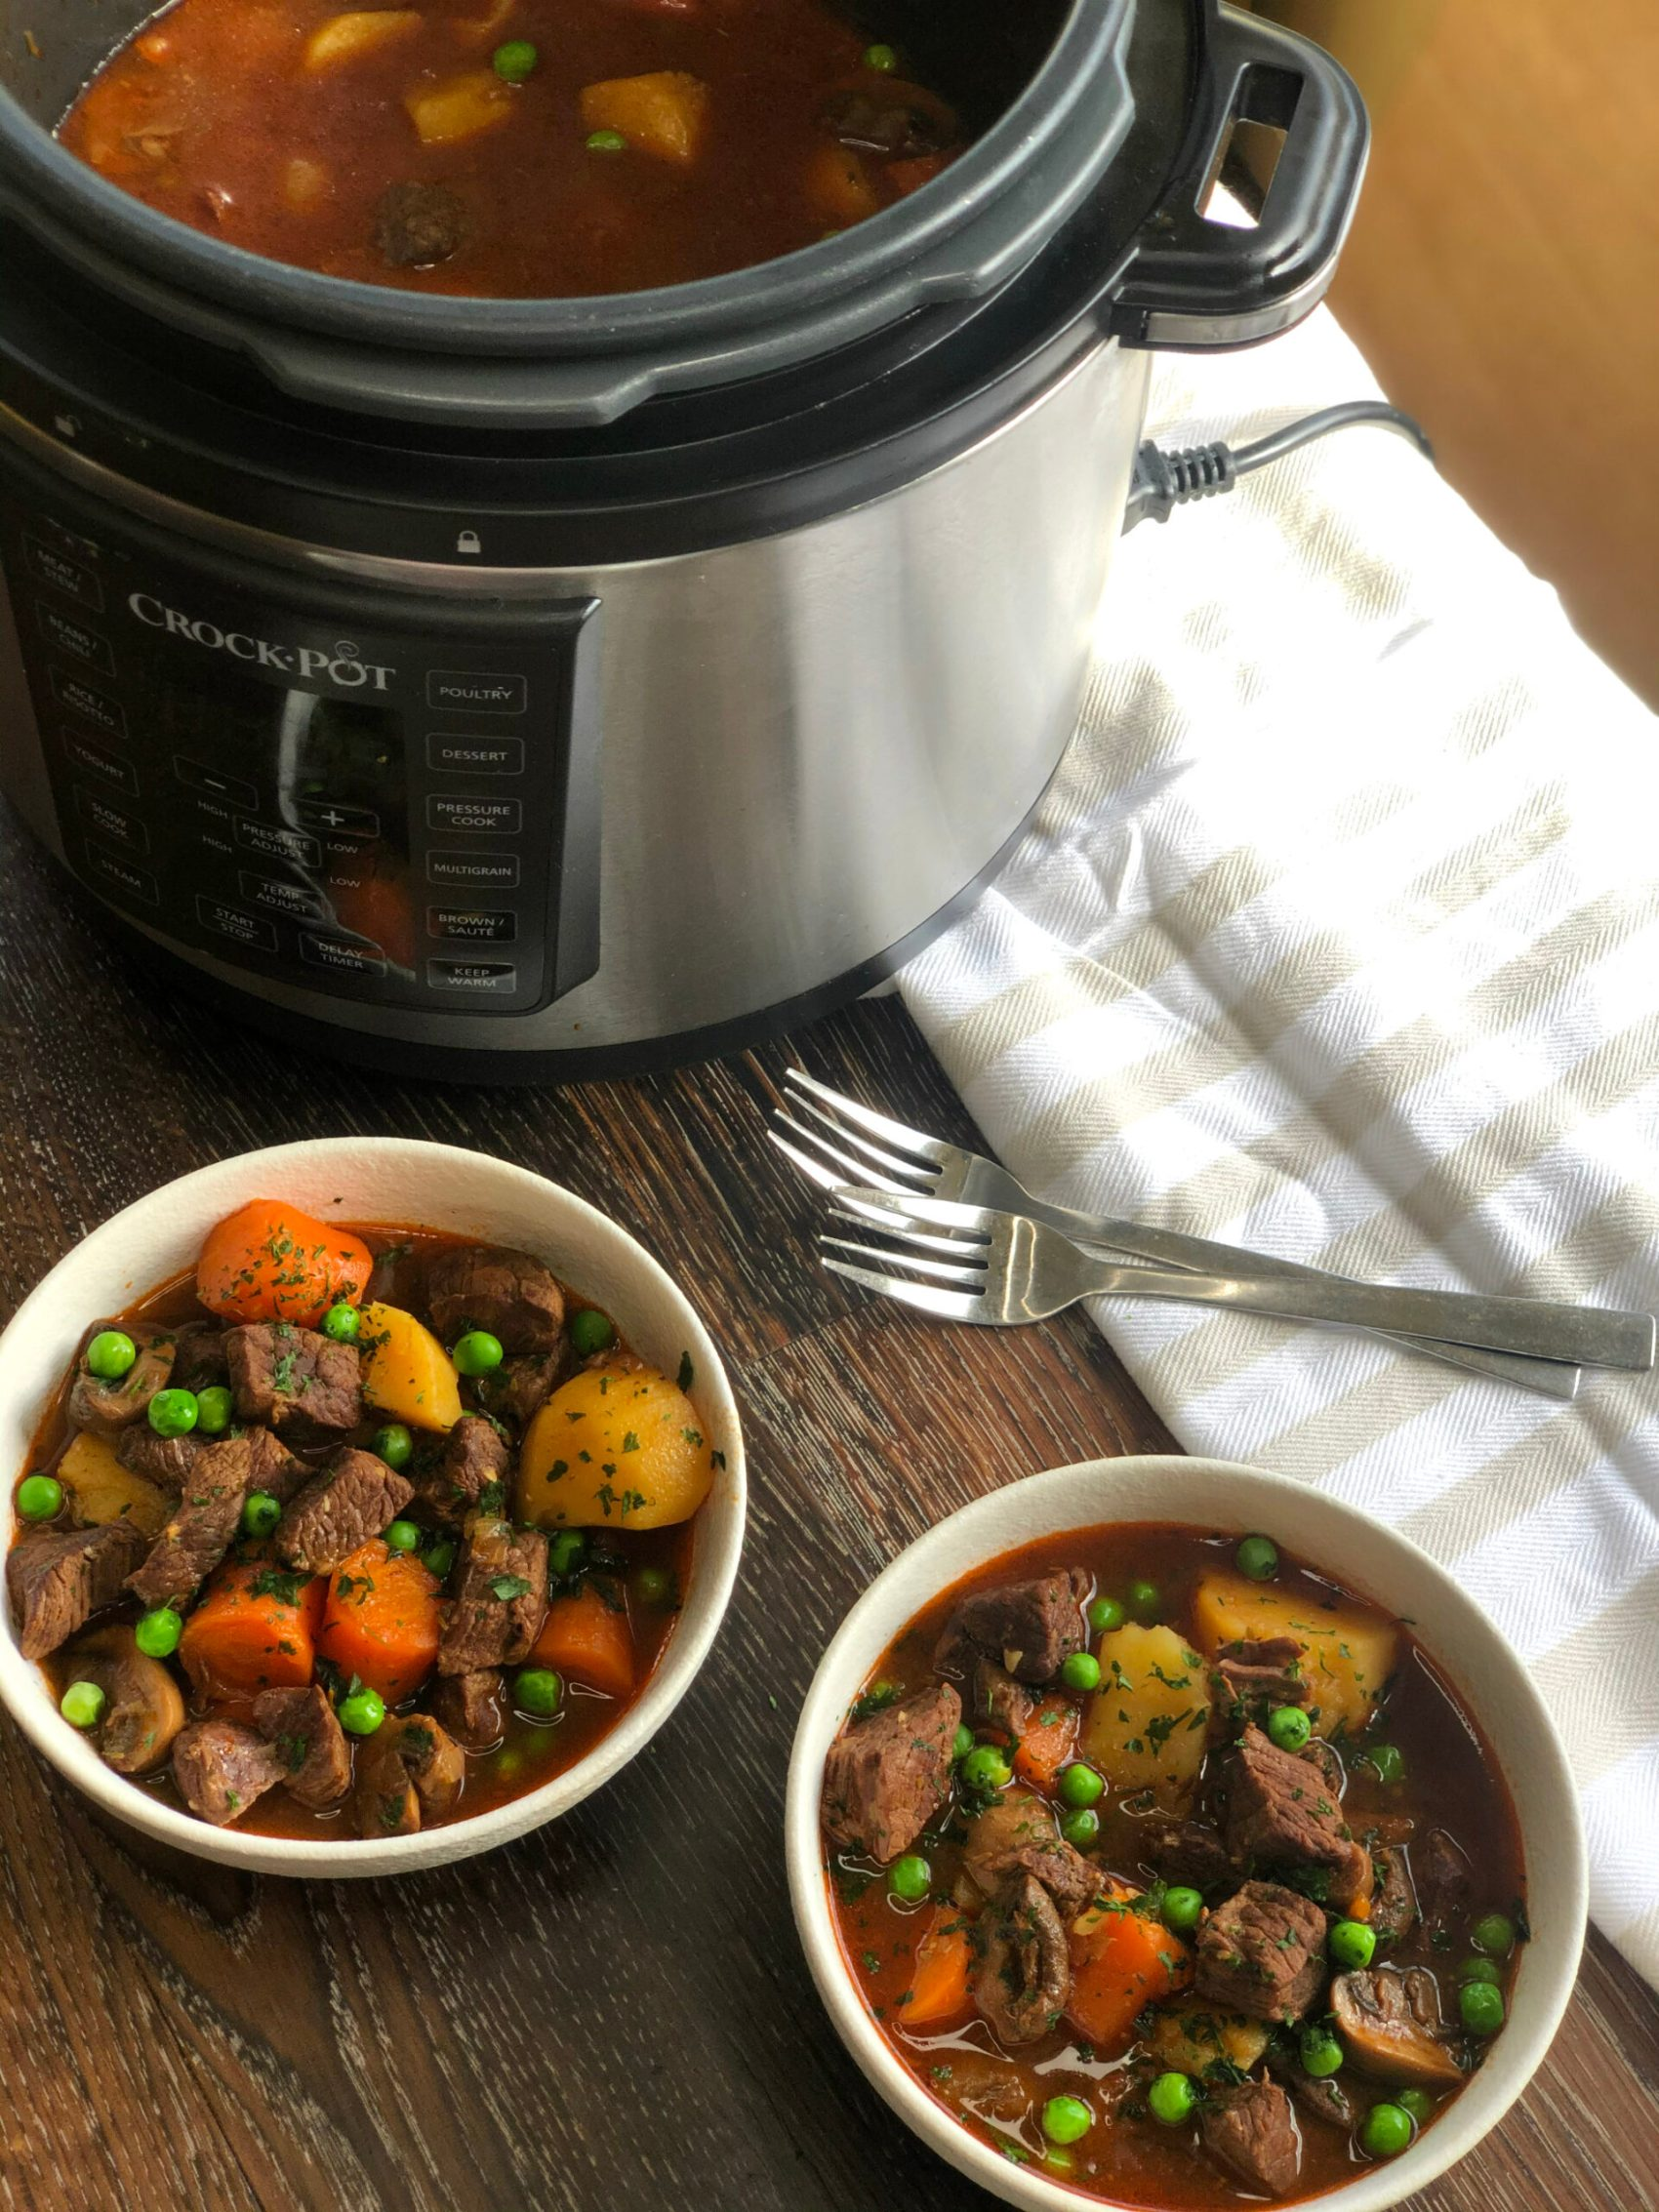 Slow Cooker Beef Stew cooked in a CrockPot